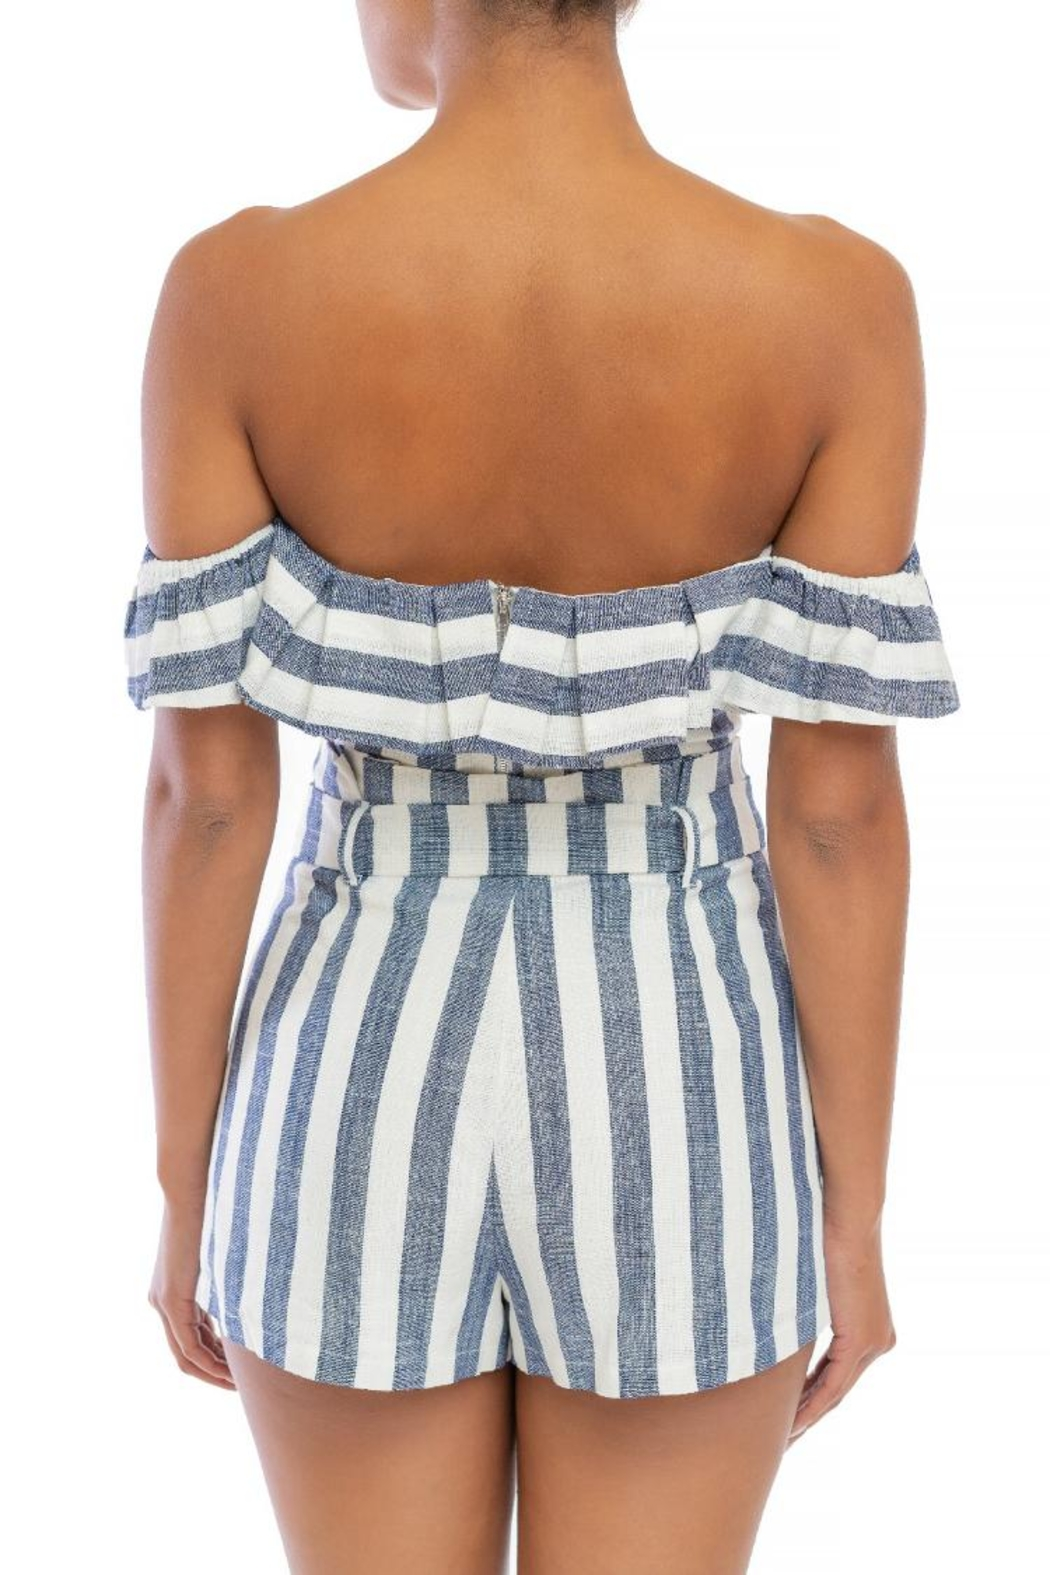 luxxel Striped Shorts Set - Front Full Image